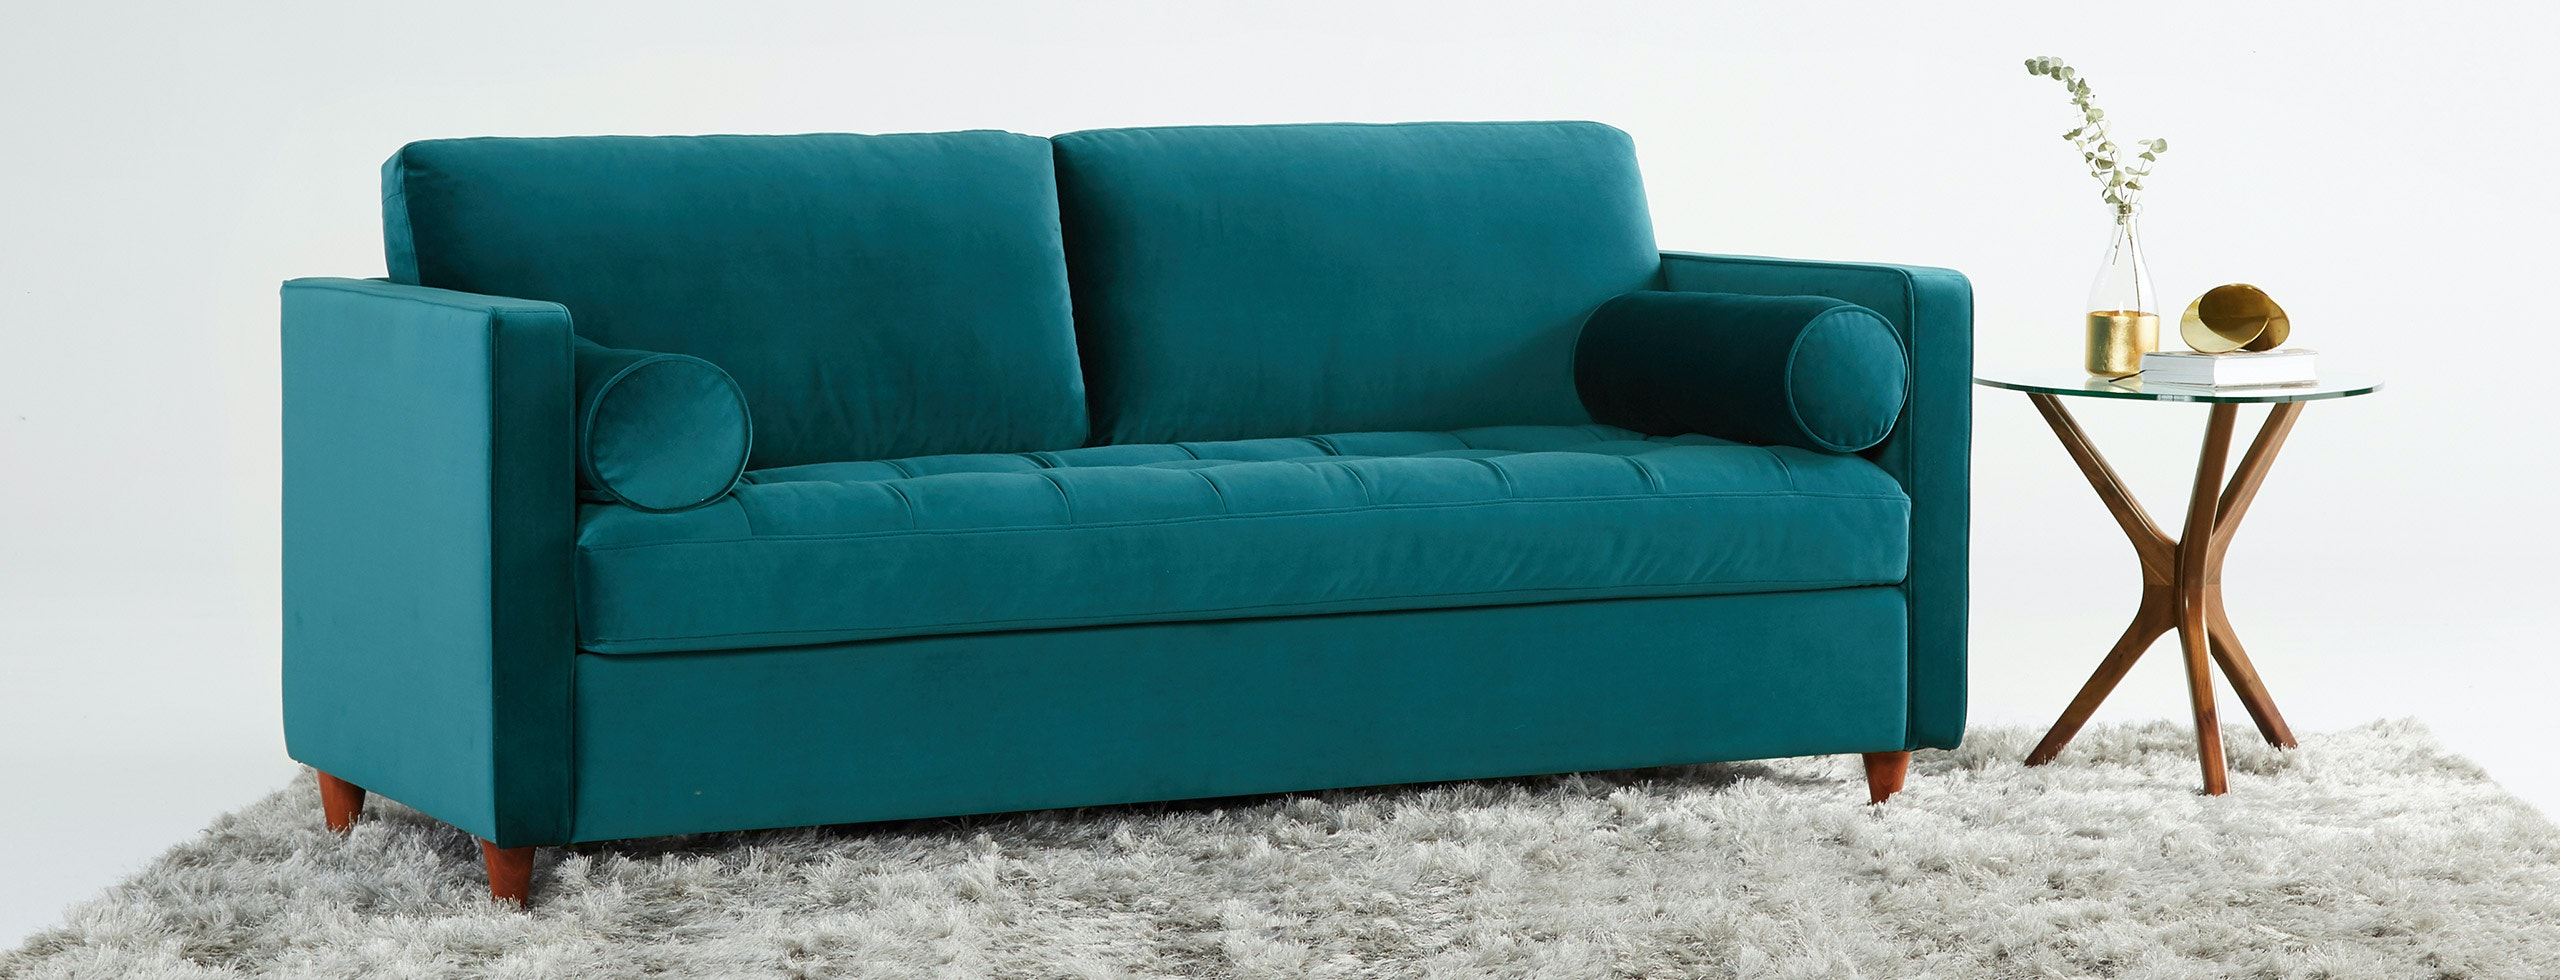 sleeper sofa made in usa designer set images velvet cococohome clic chesterfield fabric